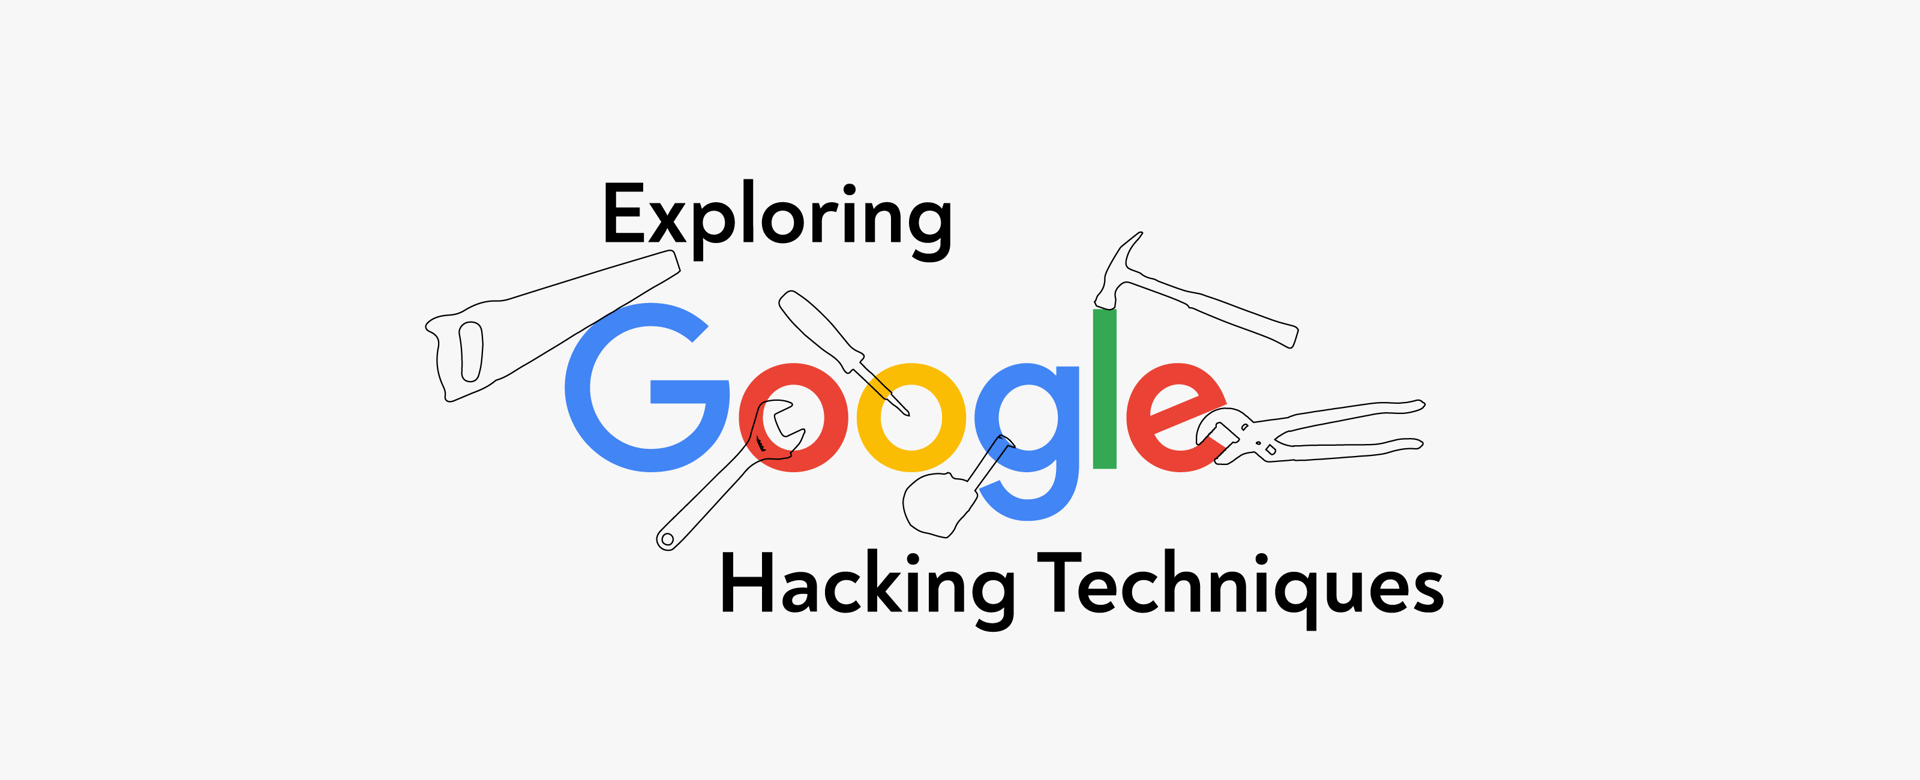 Exploring Google Hacking Techniques